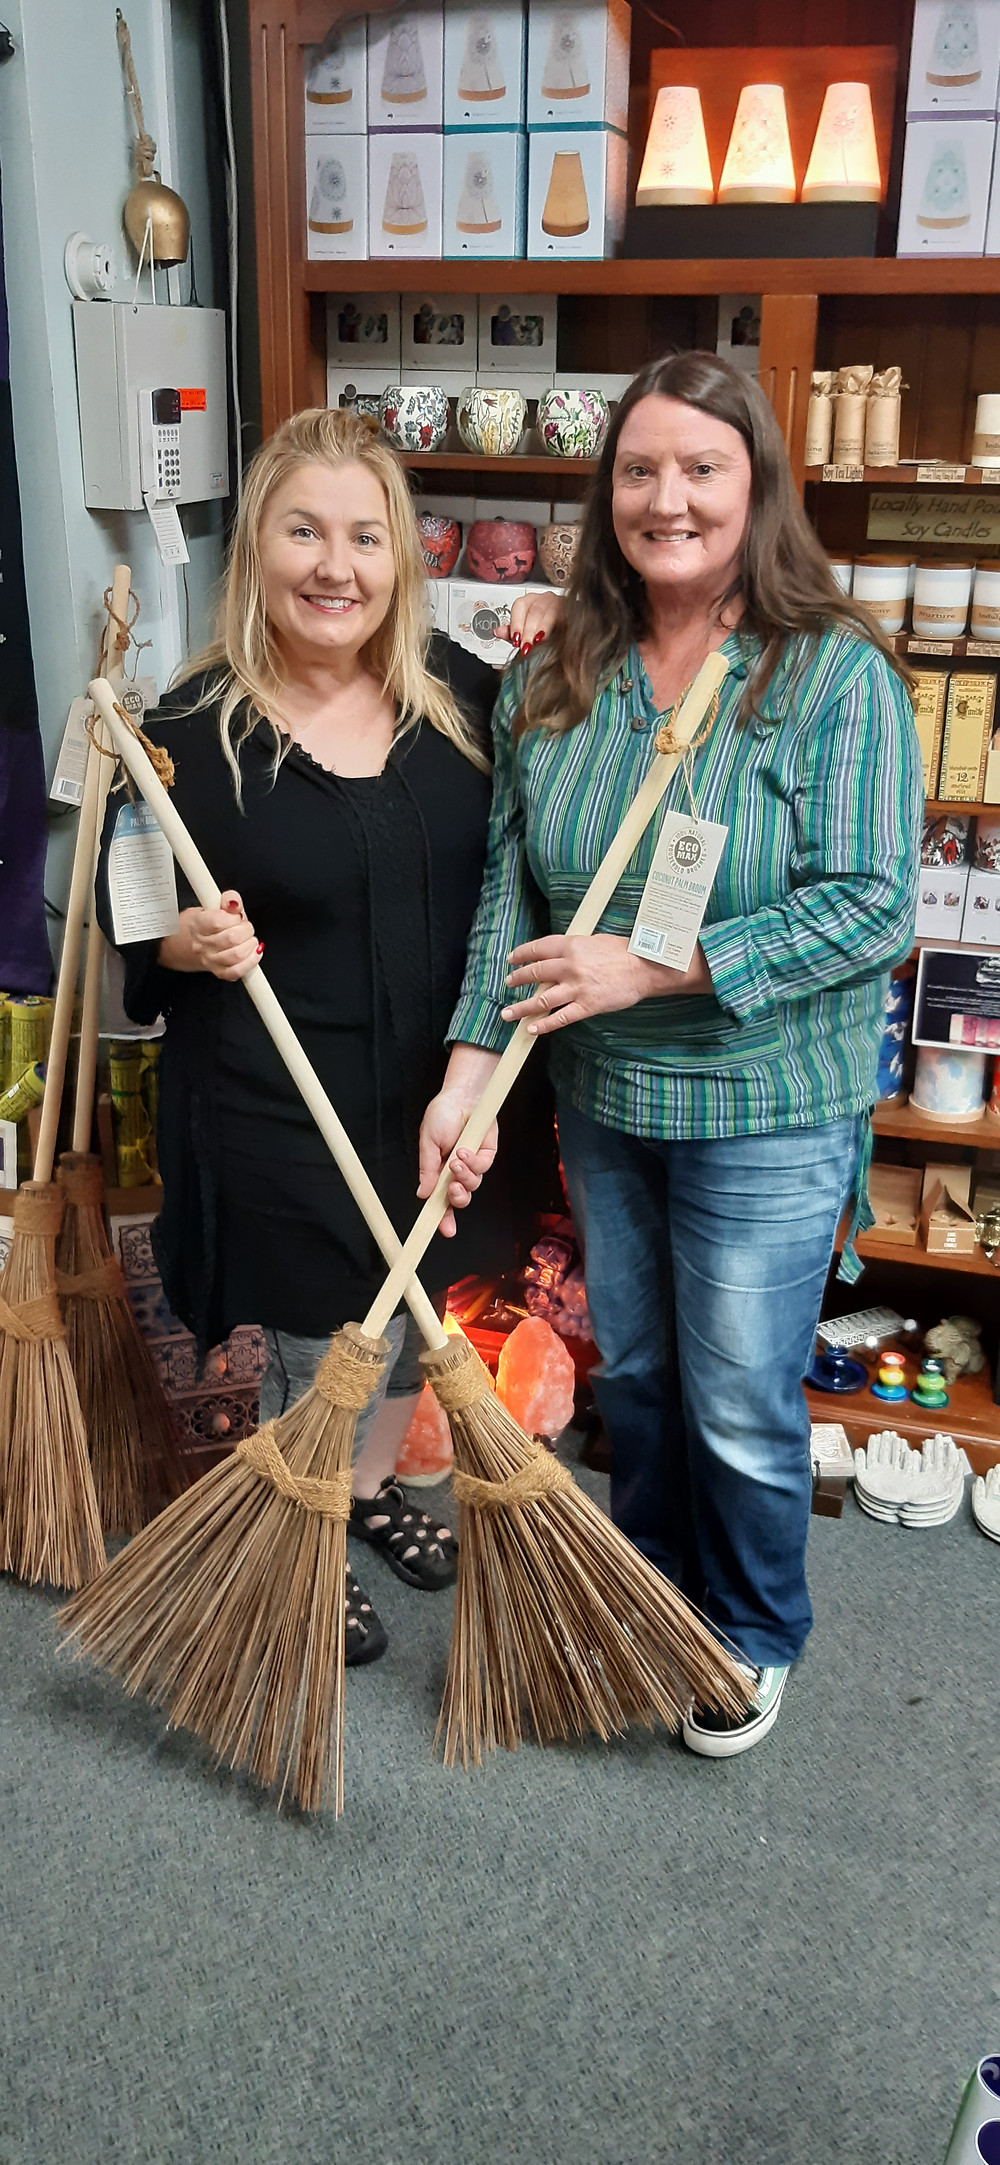 Lizzy and Mirelle with crossed brooms